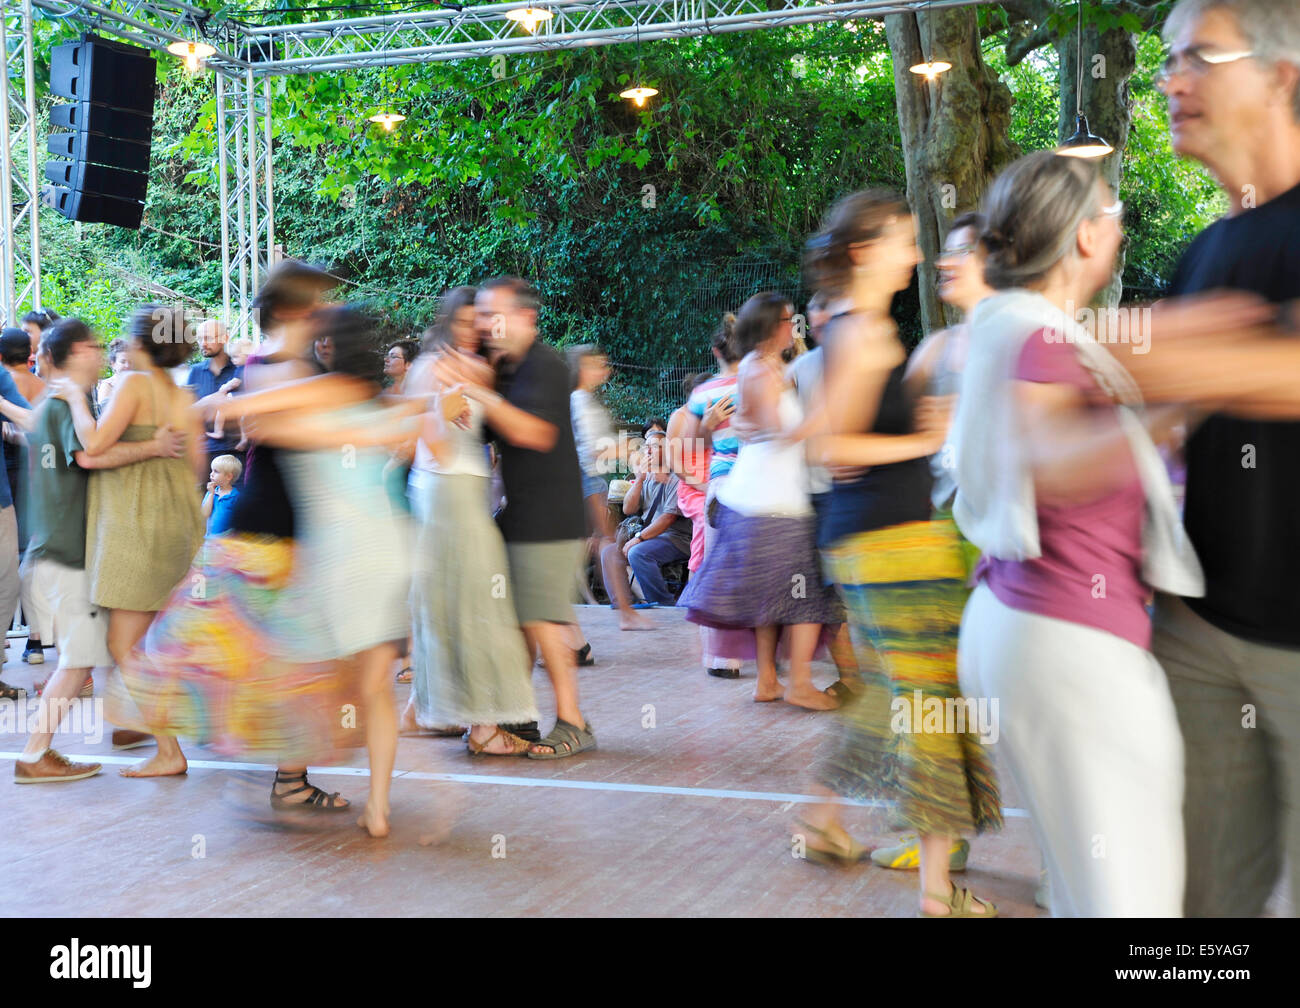 Dancing at the Bouche Oreille music festival in Parthenay Deux-Sevres France - Stock Image